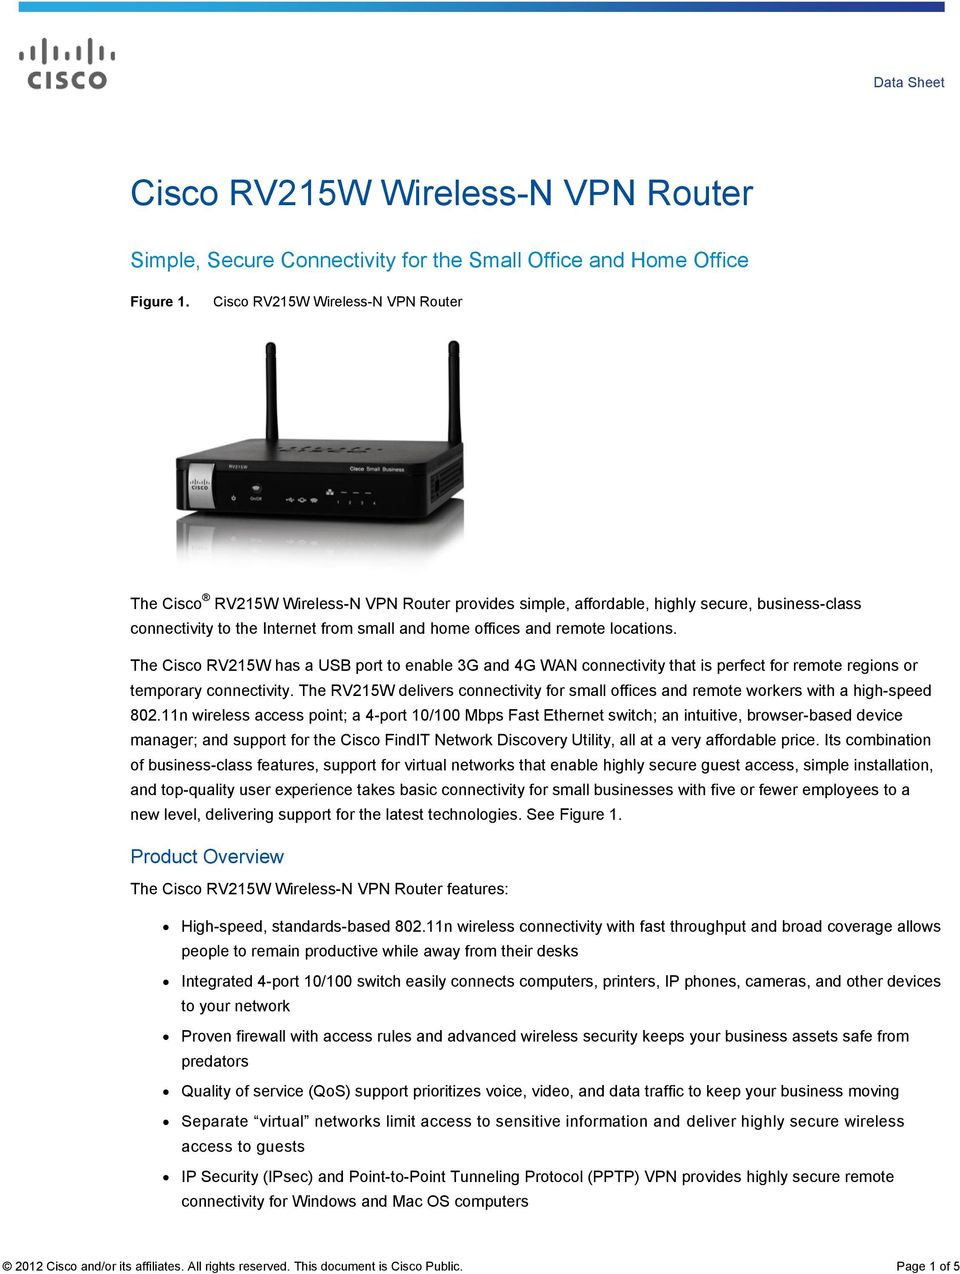 remote locations. The Cisco RV215W has a USB port to enable 3G and 4G WAN connectivity that is perfect for remote regions or temporary connectivity.